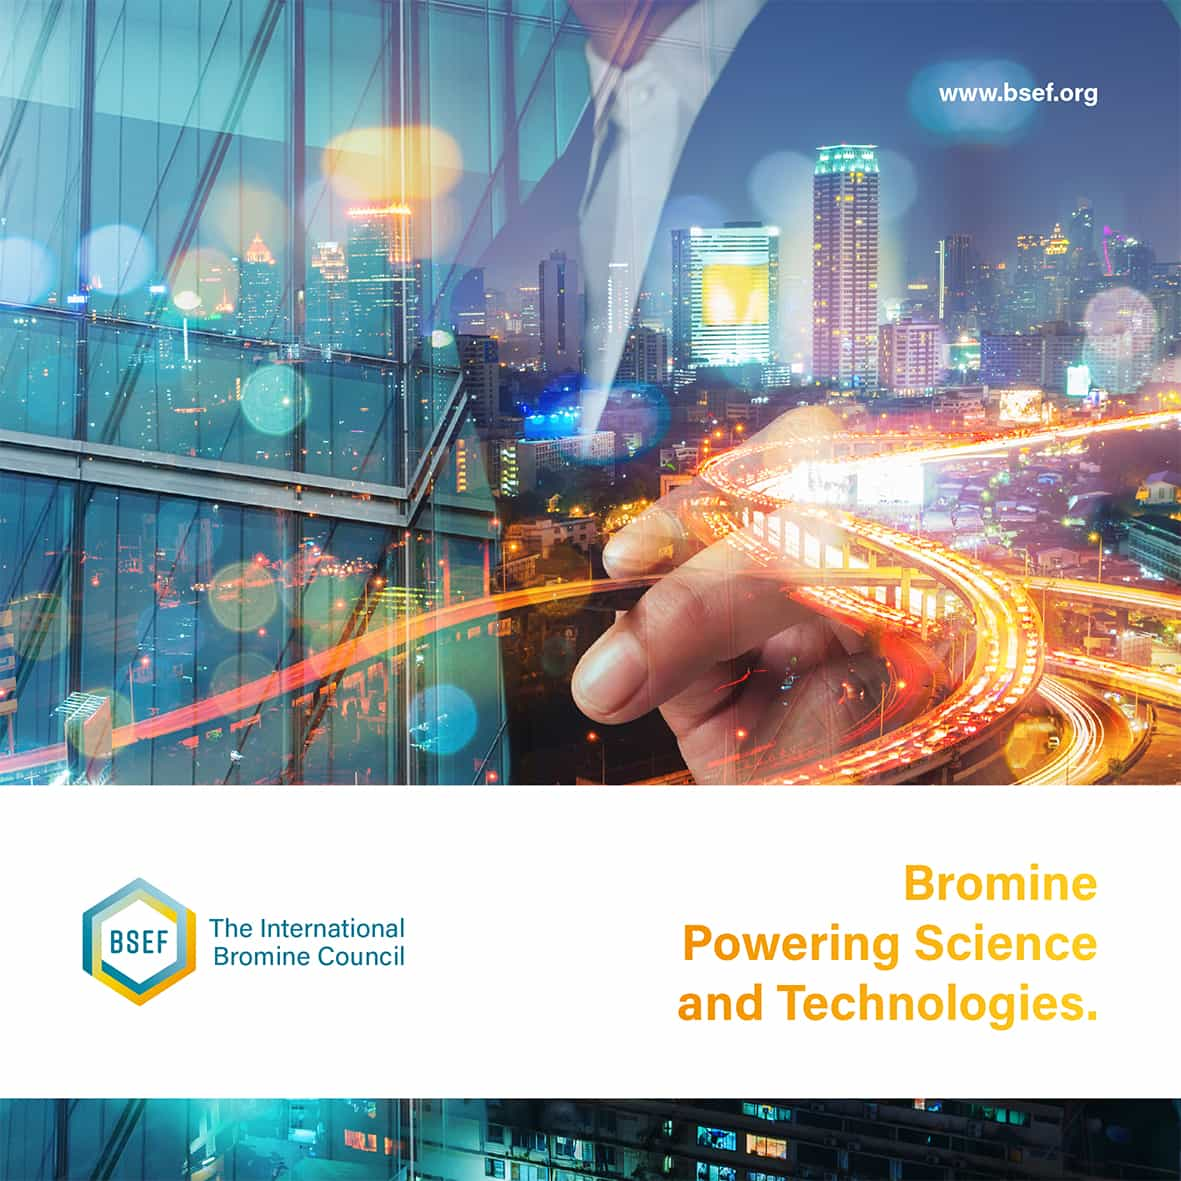 Bromine Powering Science and Technologies BSEF Lets talk bromine The international bromine council